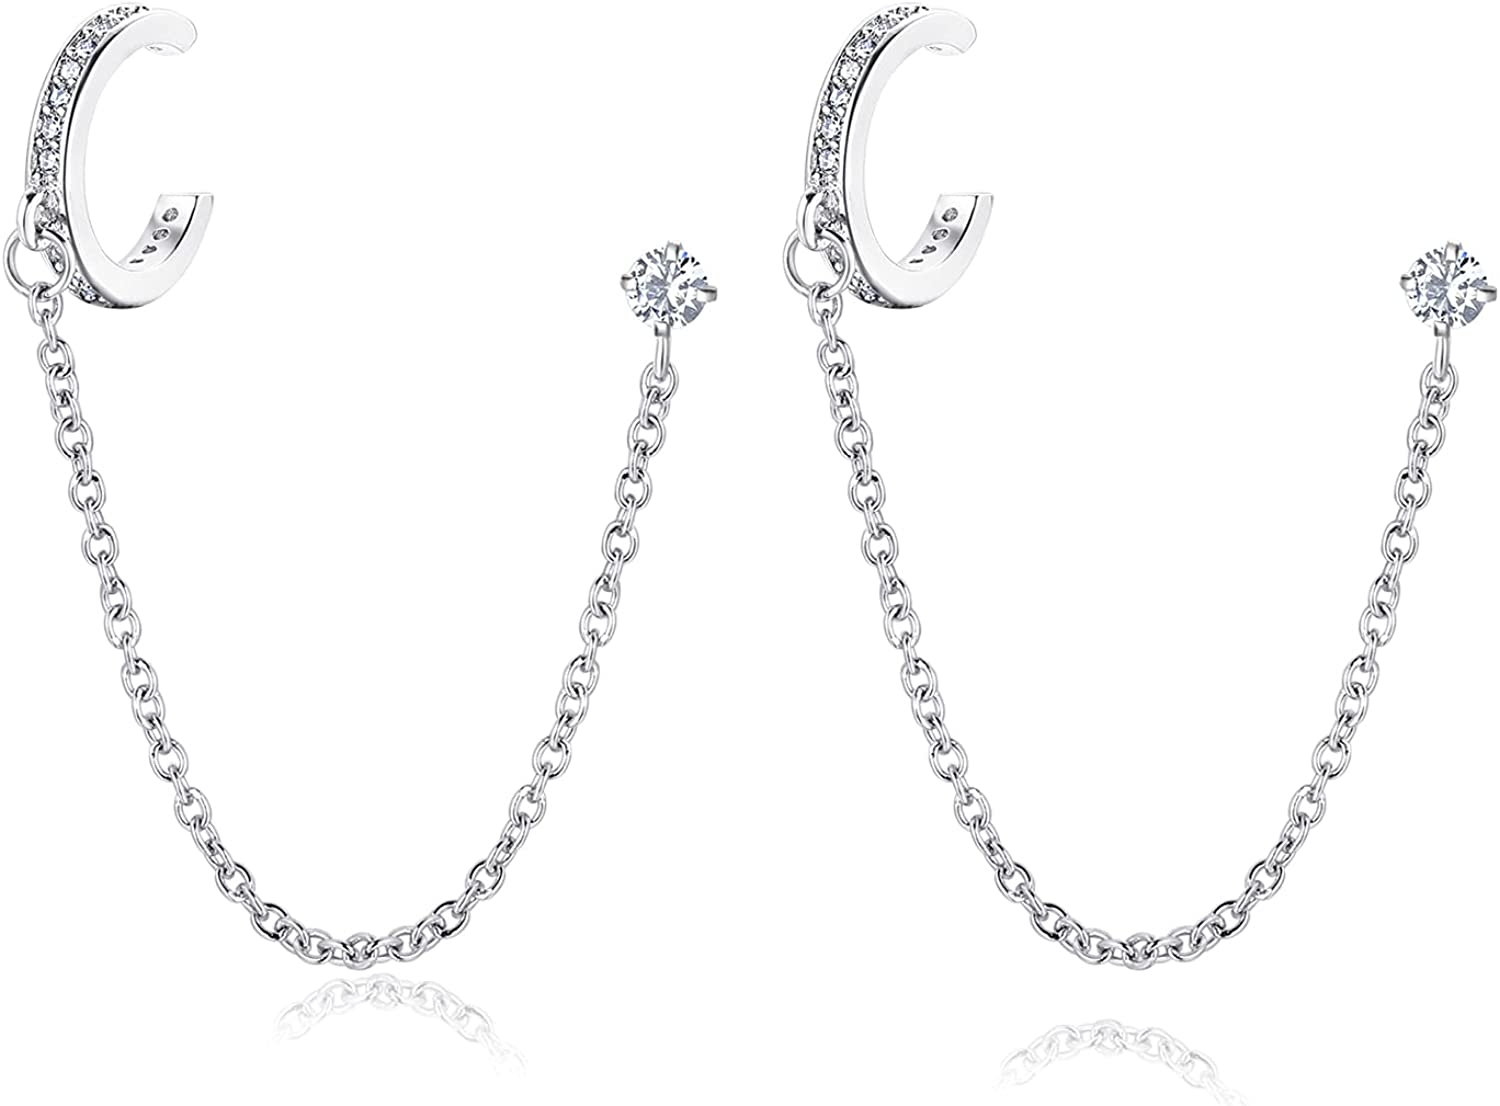 16g Cartilage Earrings Chain Double Piercing Stainless Steel CZ Double Hoop Earring with Butterfly Moon for Forward Helix 2nd and 3rd Piercing Holes